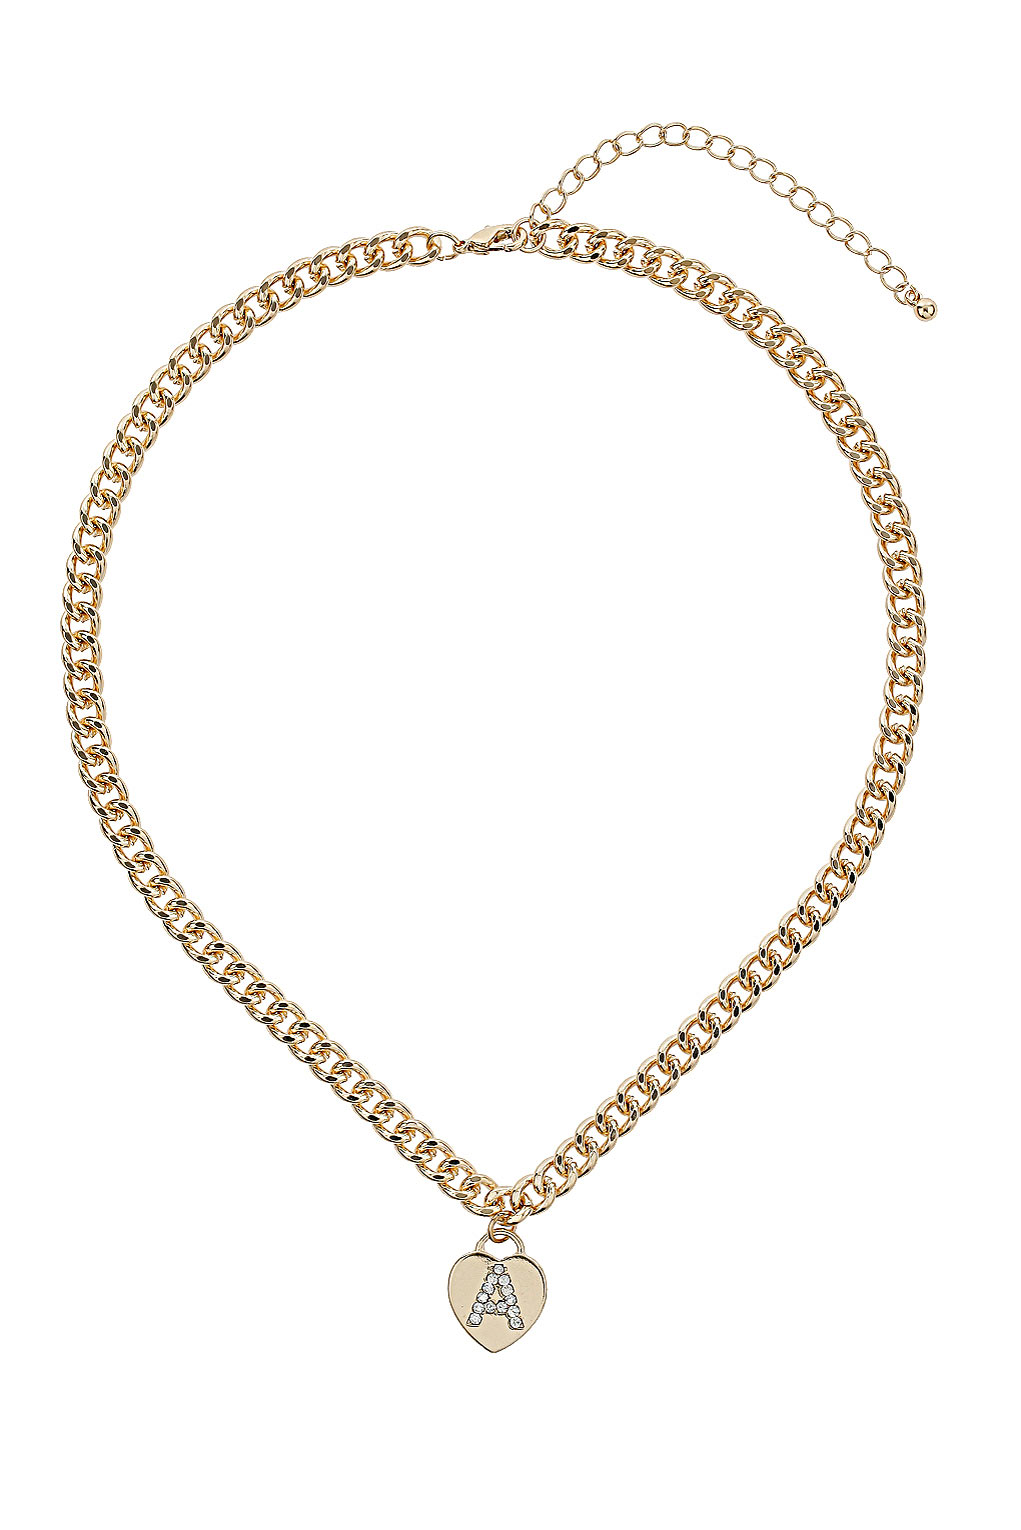 anecklace